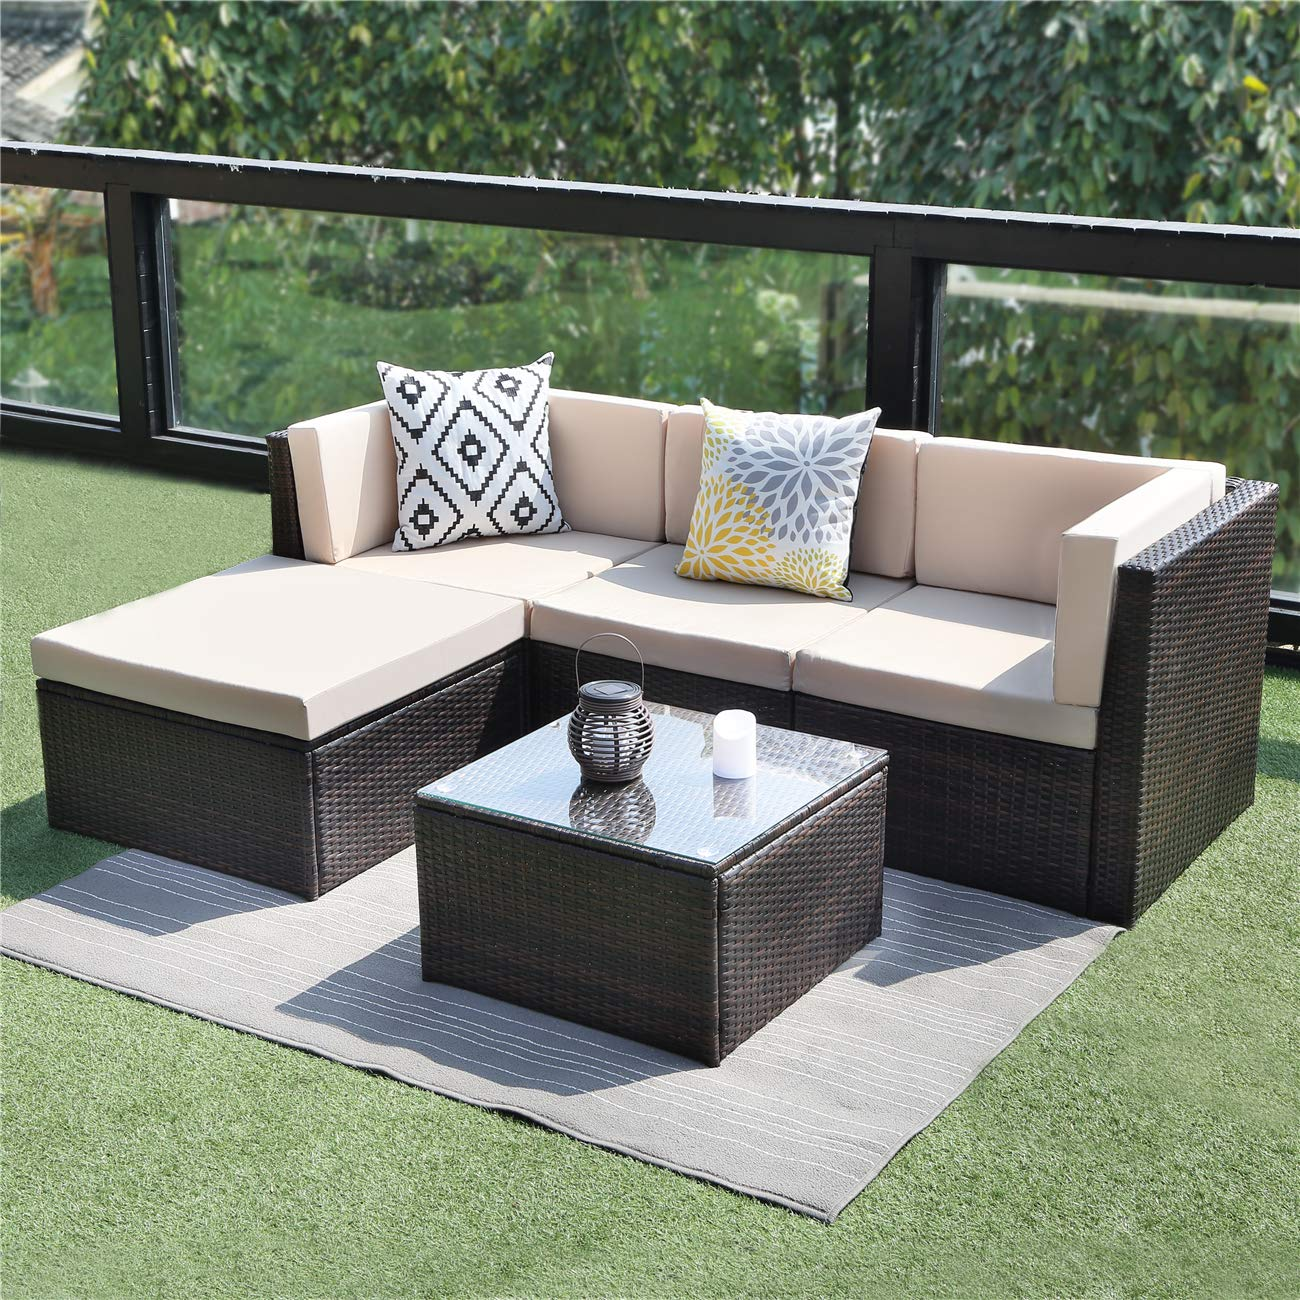 Wisteria Lane Outdoor Sectional Patio Furniture,5 Piece ... on 5 Piece Sectional Patio Set id=45256